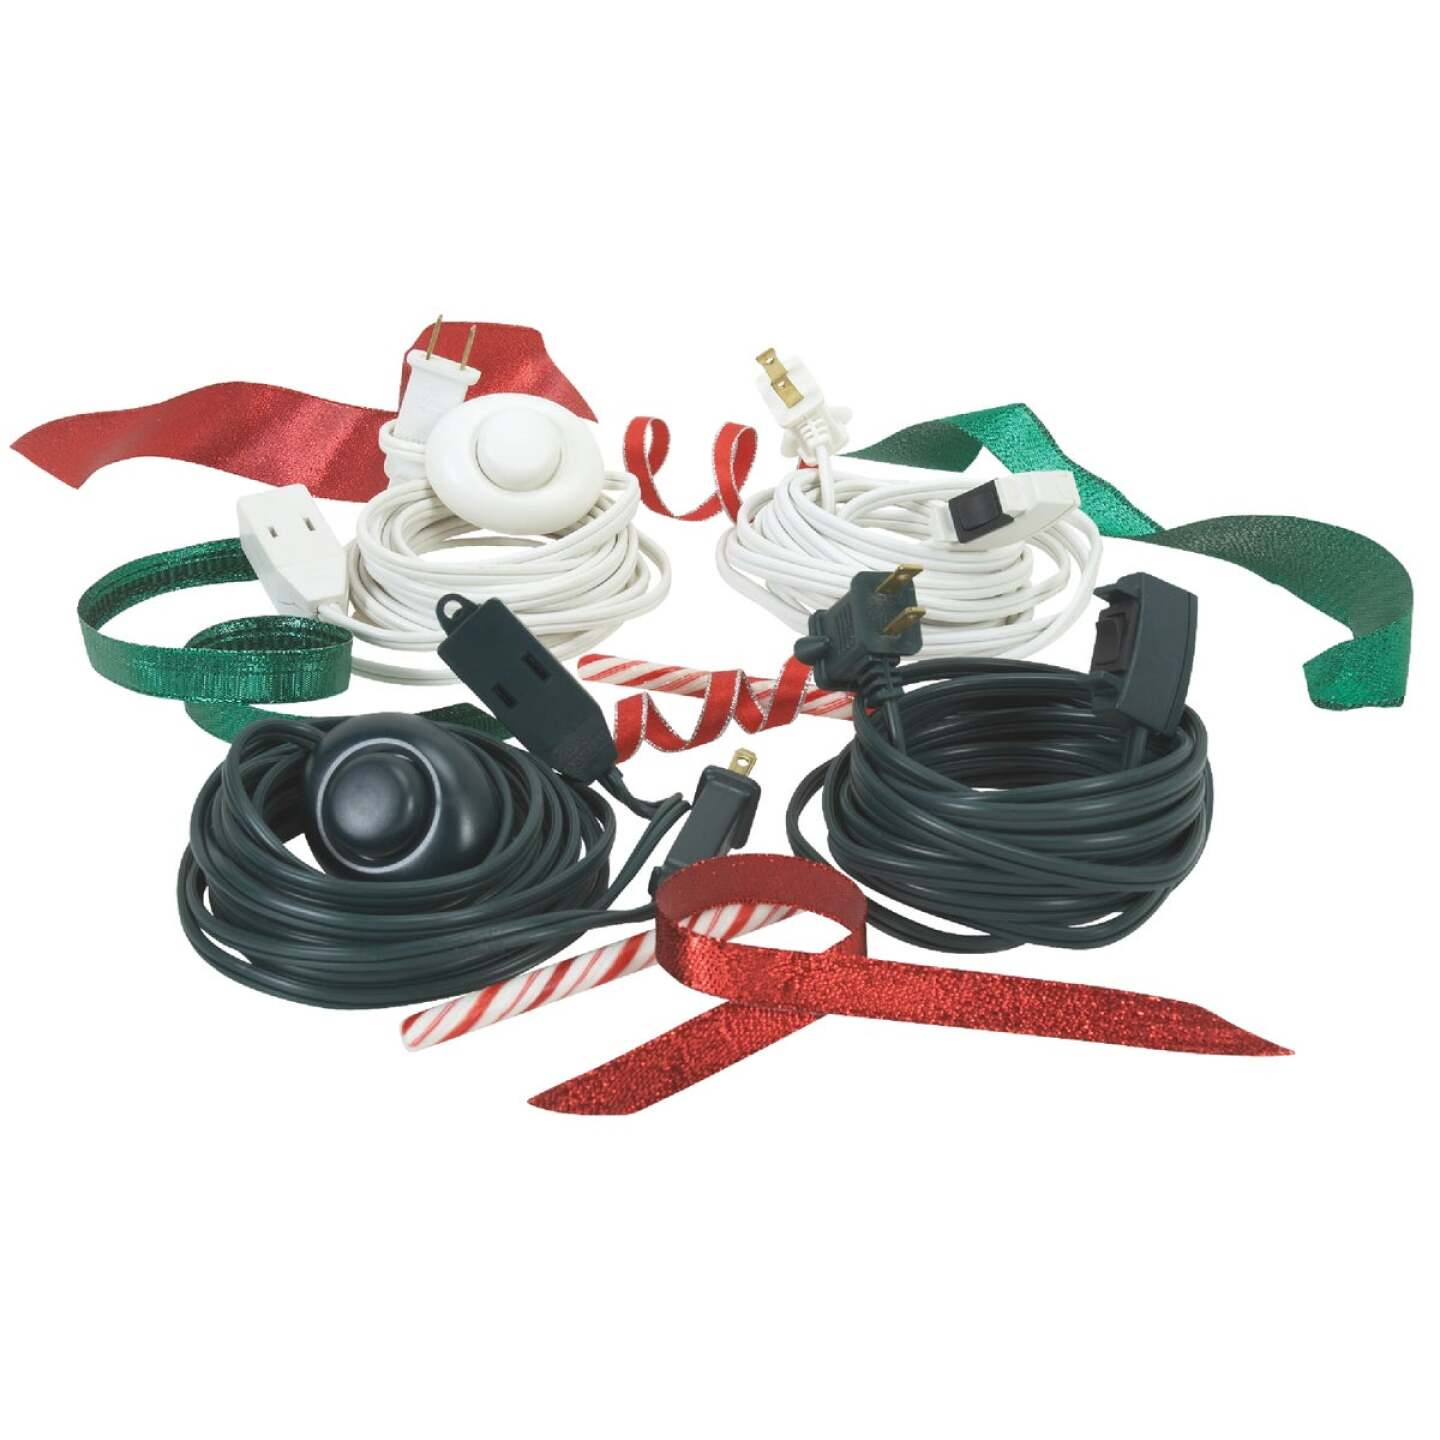 Do it 15 Ft. 16/2 Green Extension Cord with Switch Image 2